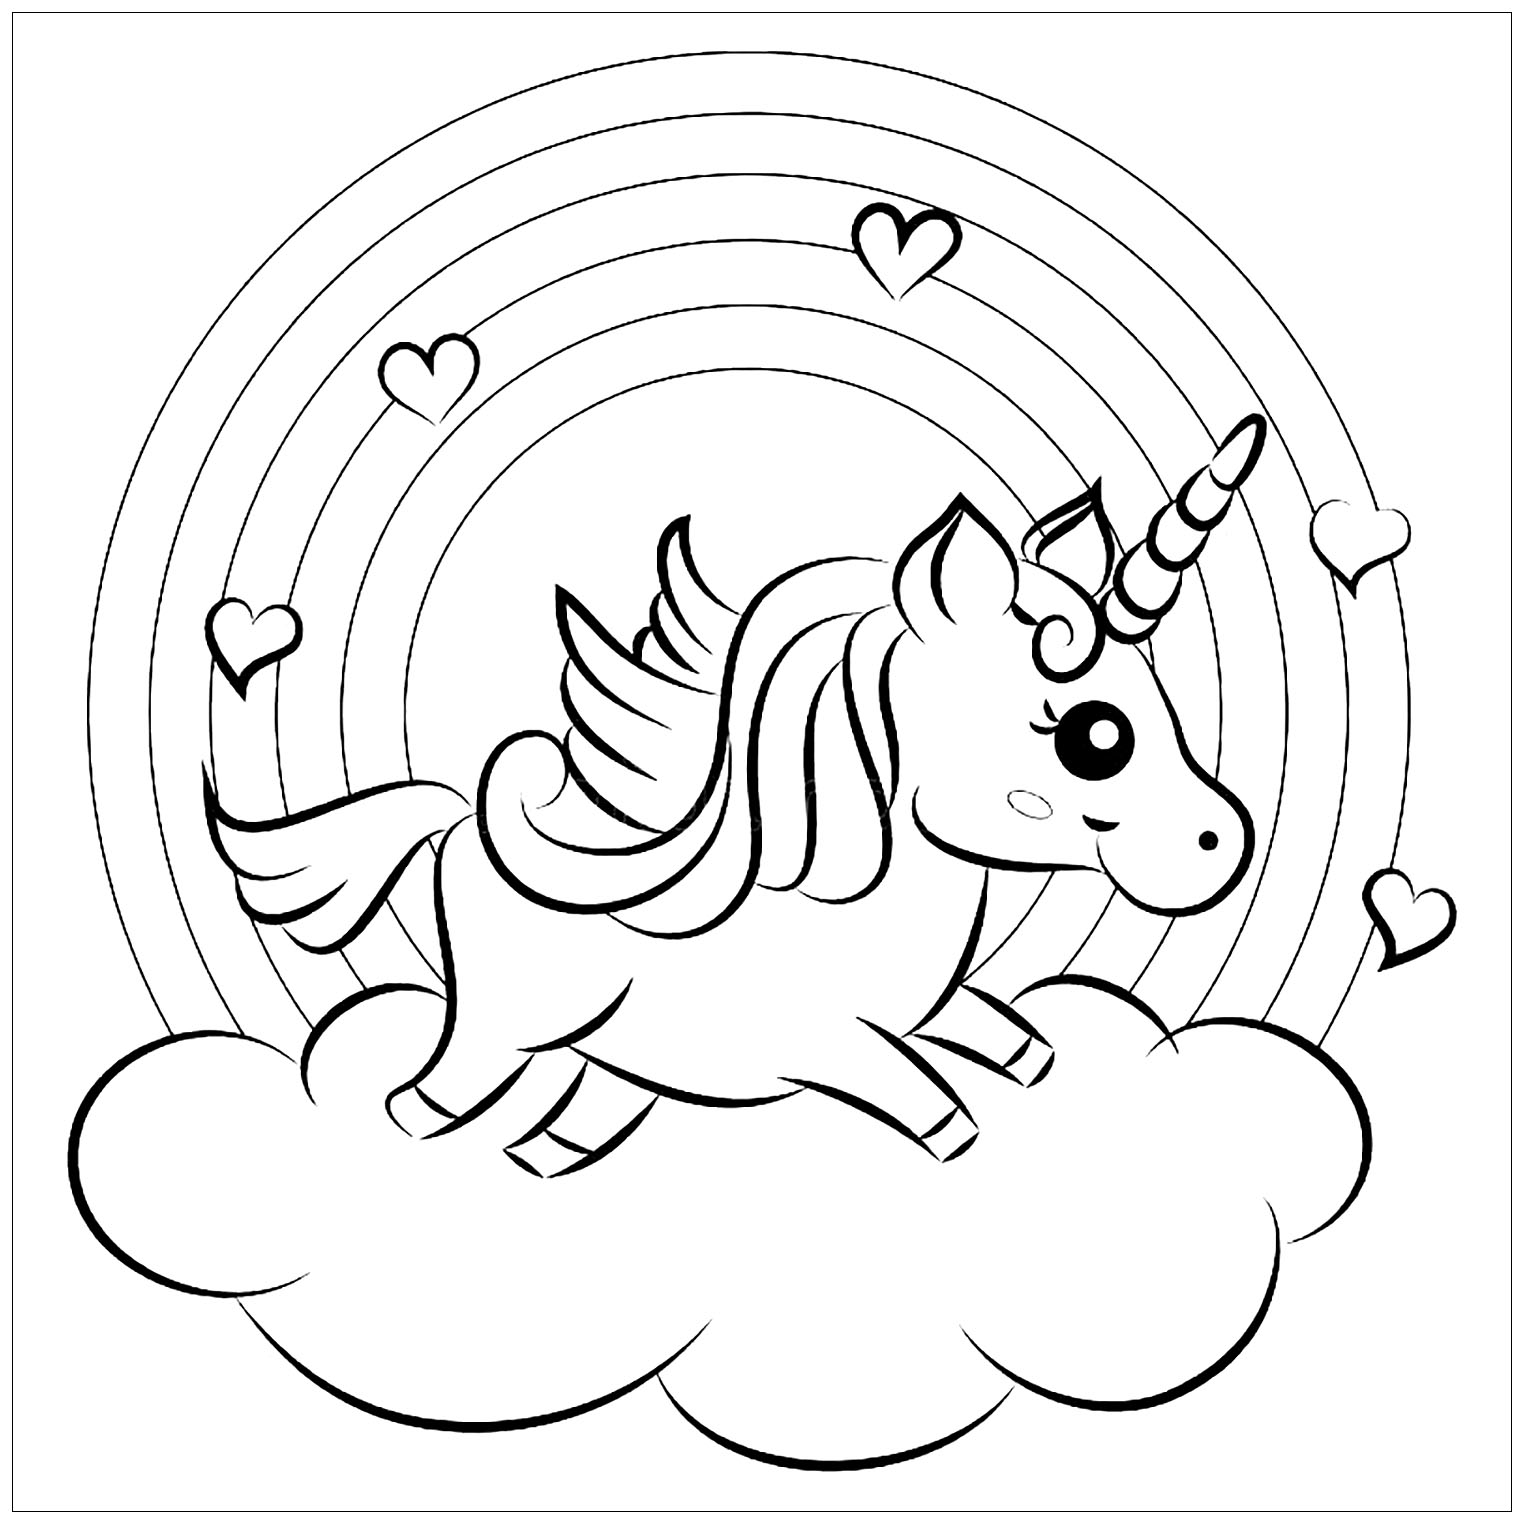 coloring unicorn kids drawing free printable unicorn coloring pages for kids drawing unicorn kids coloring 1 1